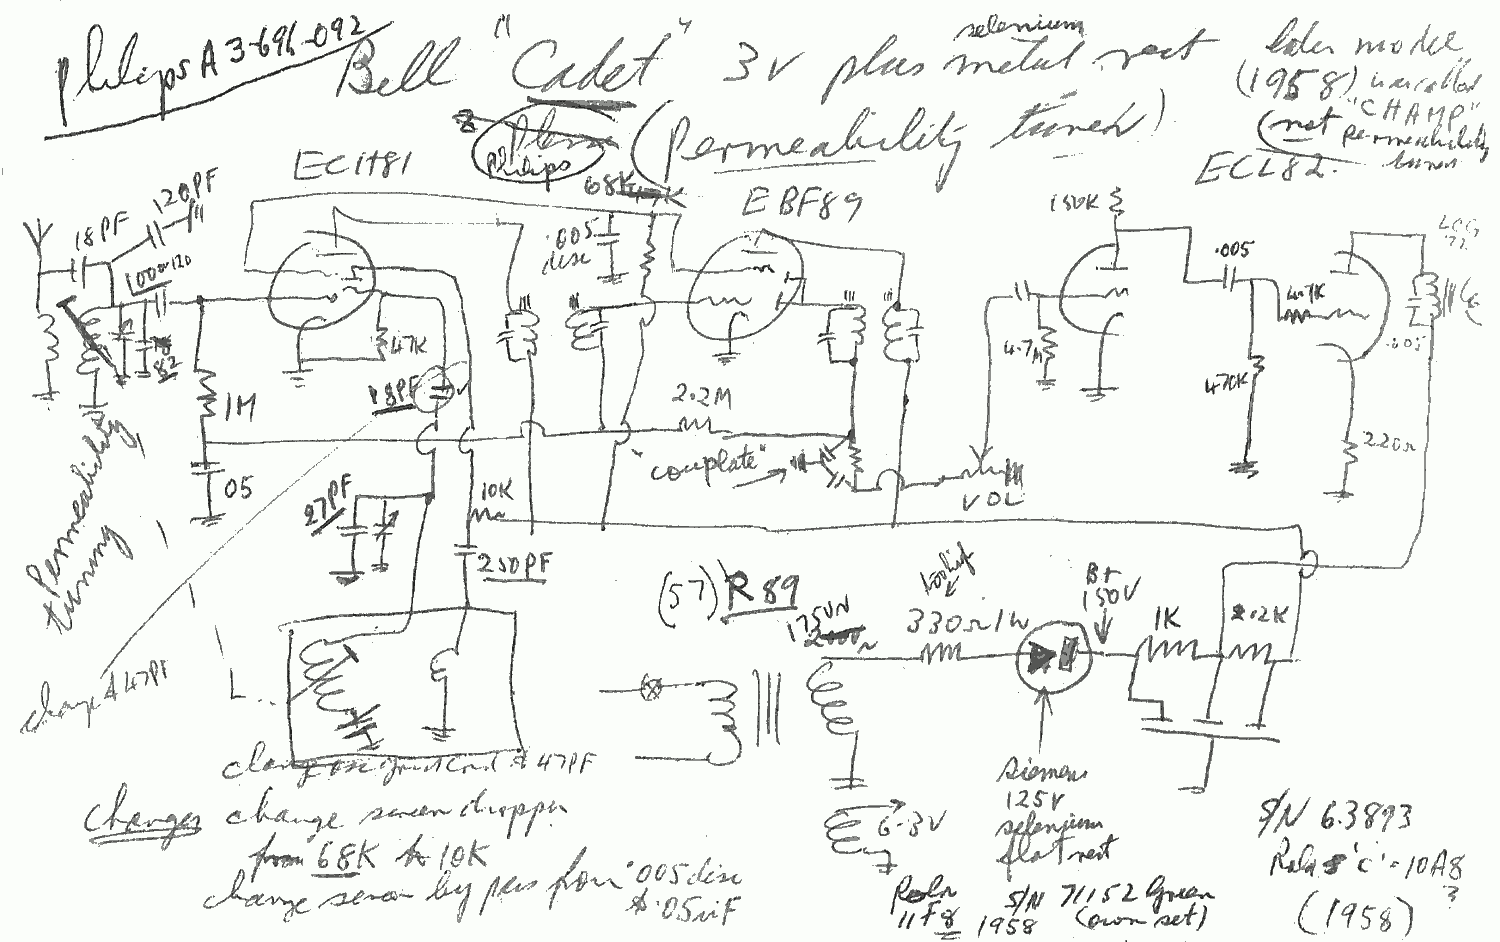 1958 Bell Colt Cadet Schematic Notes